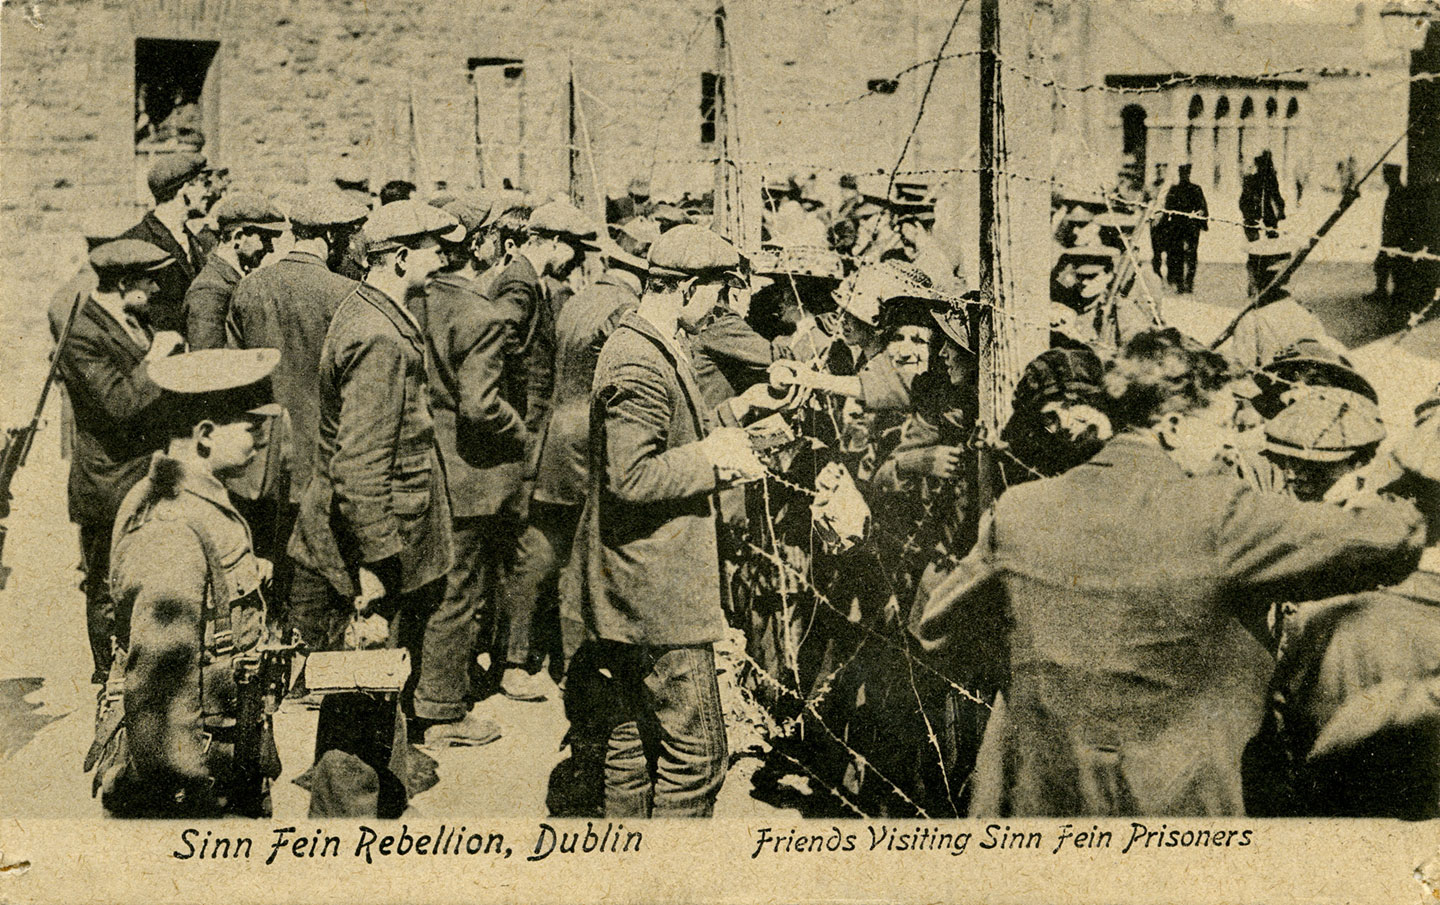 Remarkable scenes as interned prisoners return to Dublin